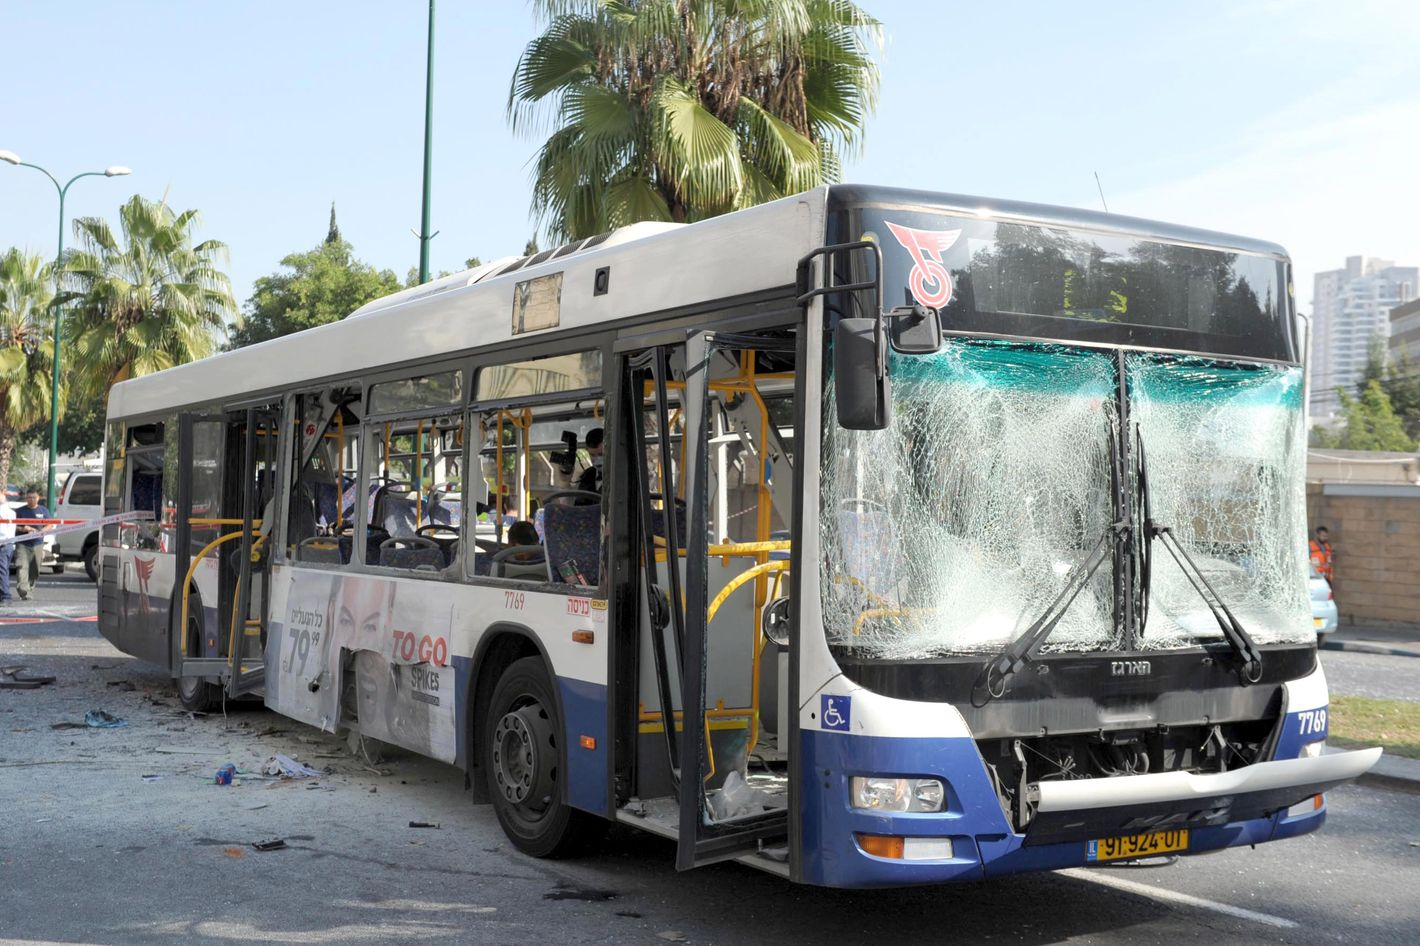 A general view of the scene after a bus exploded with passengers onboard on November 21, 2012 in central Tel Aviv, Israel. At least ten people have been injured in a blast on a bus near military headquarters in what is being described as terrorist attack which threatens to derail ongoing cease-fire negotiations between Israeli and Palestinian authorities.